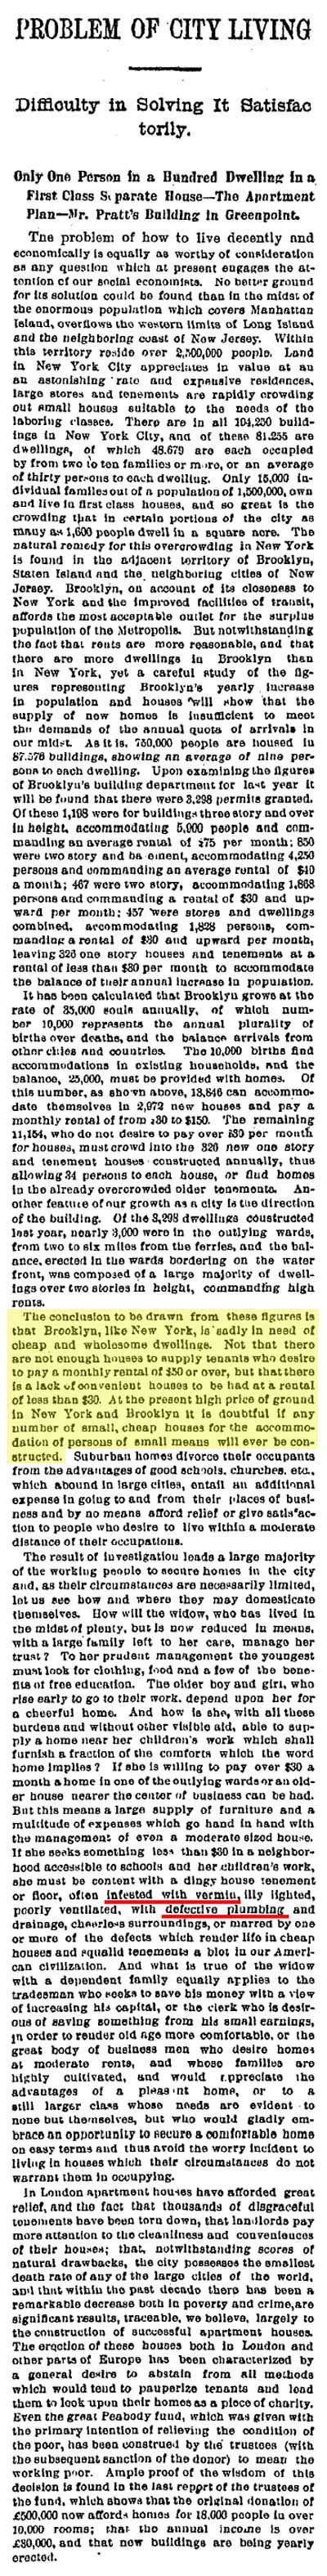 Brooklyn Daily Eagle 12/5/1886